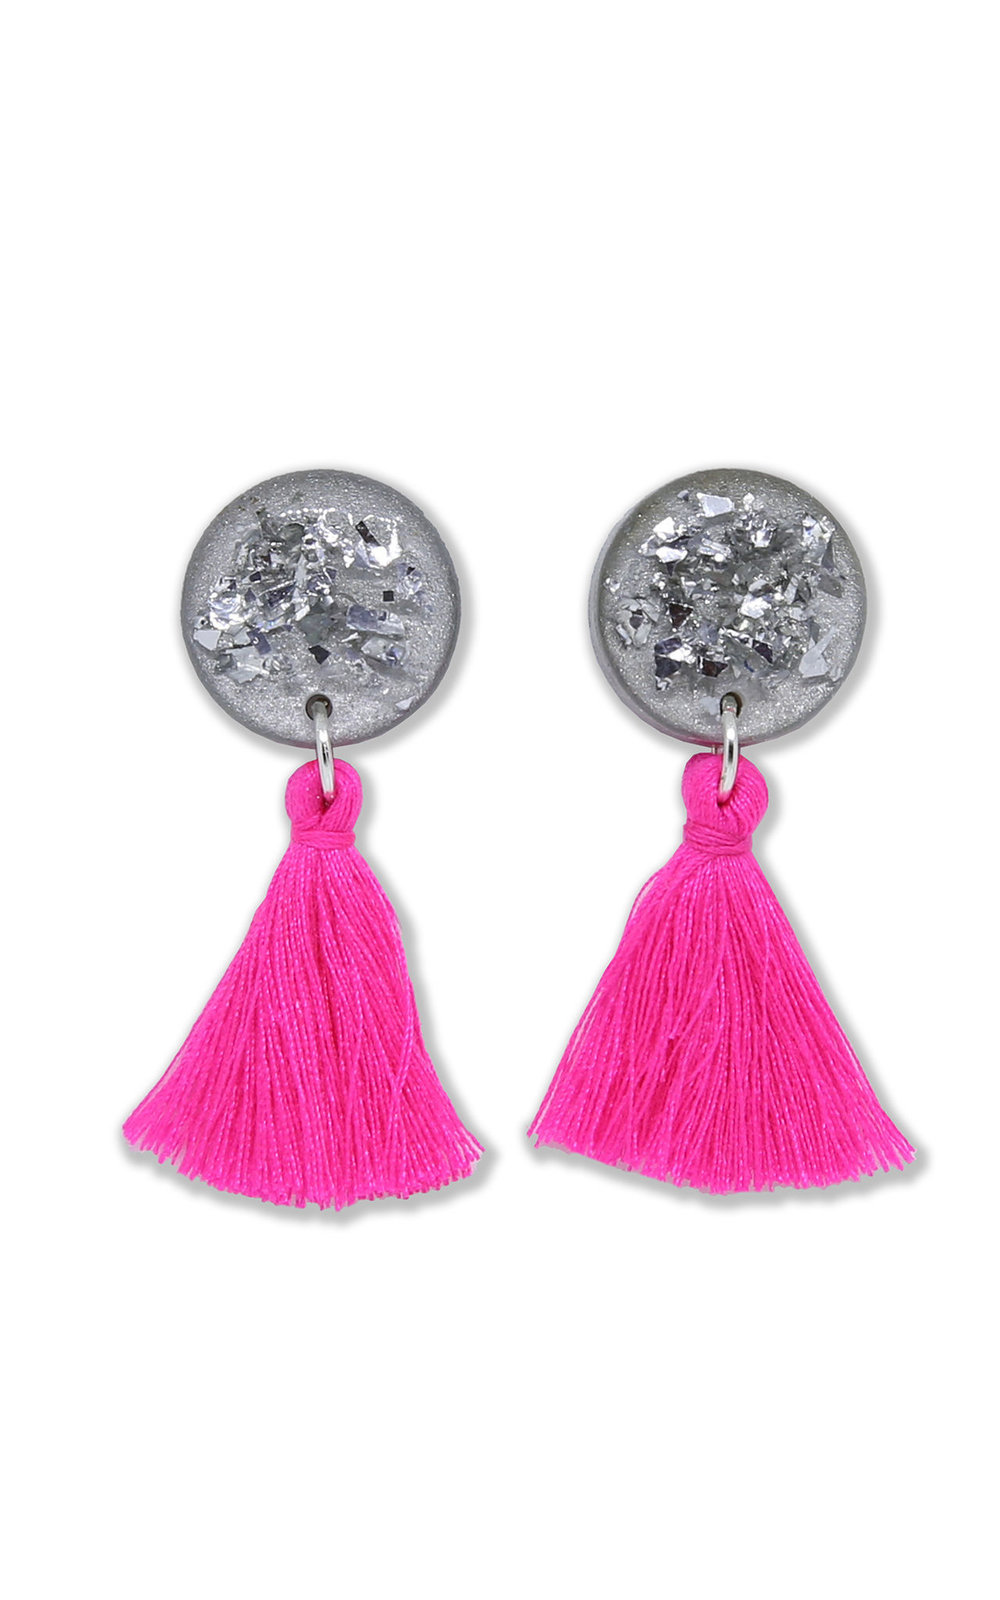 Silk Fred Pink Tassel Earrings.jpg